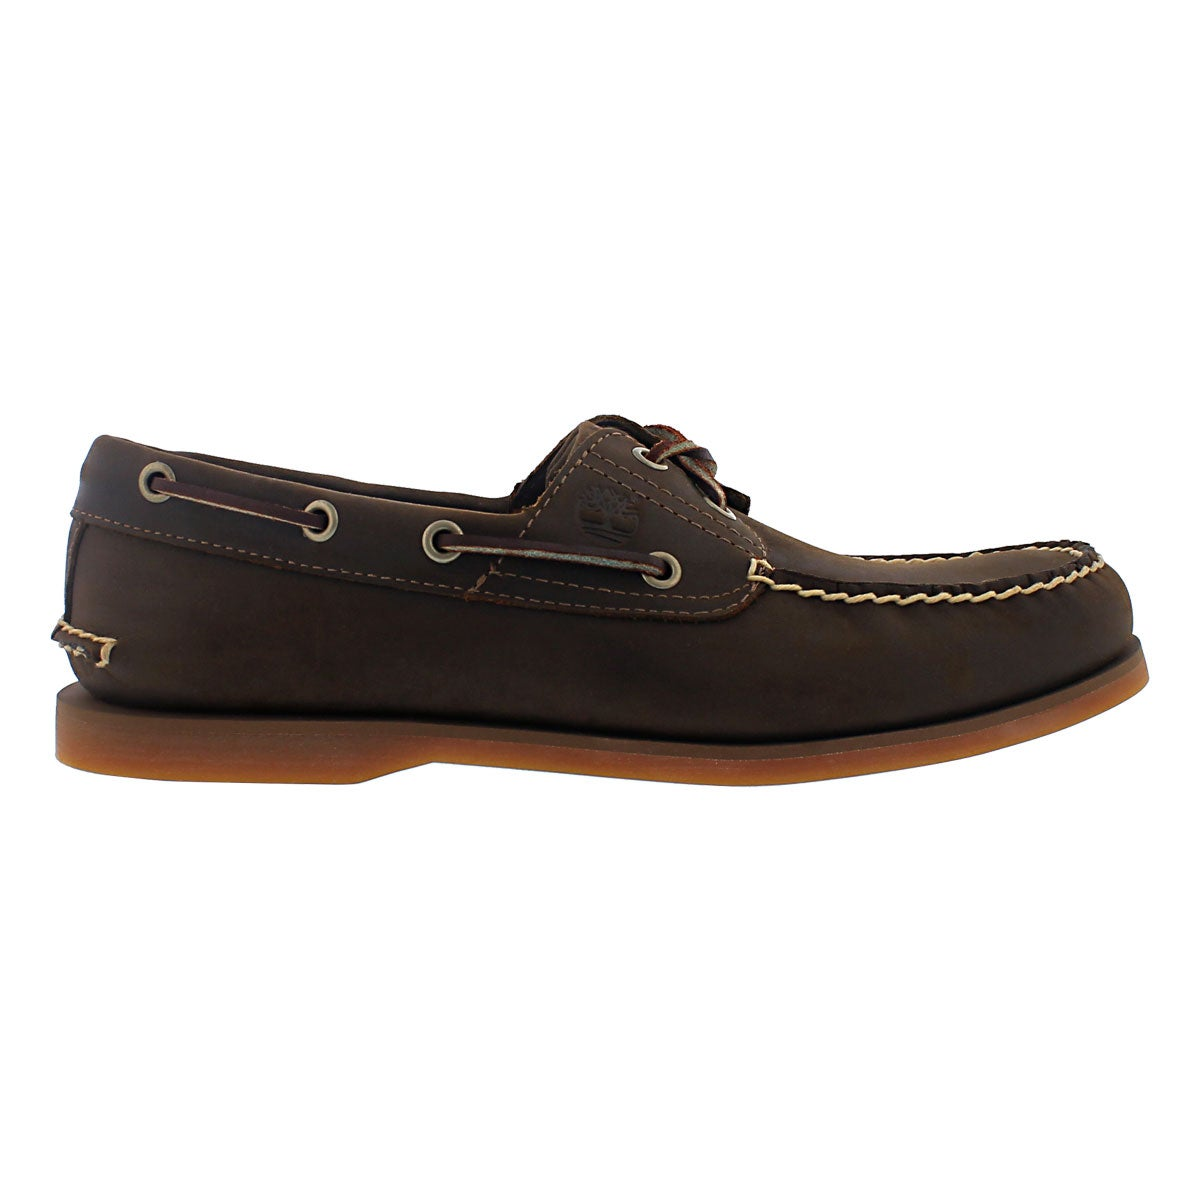 Mns Classic Boat brown 2 eye boat shoe